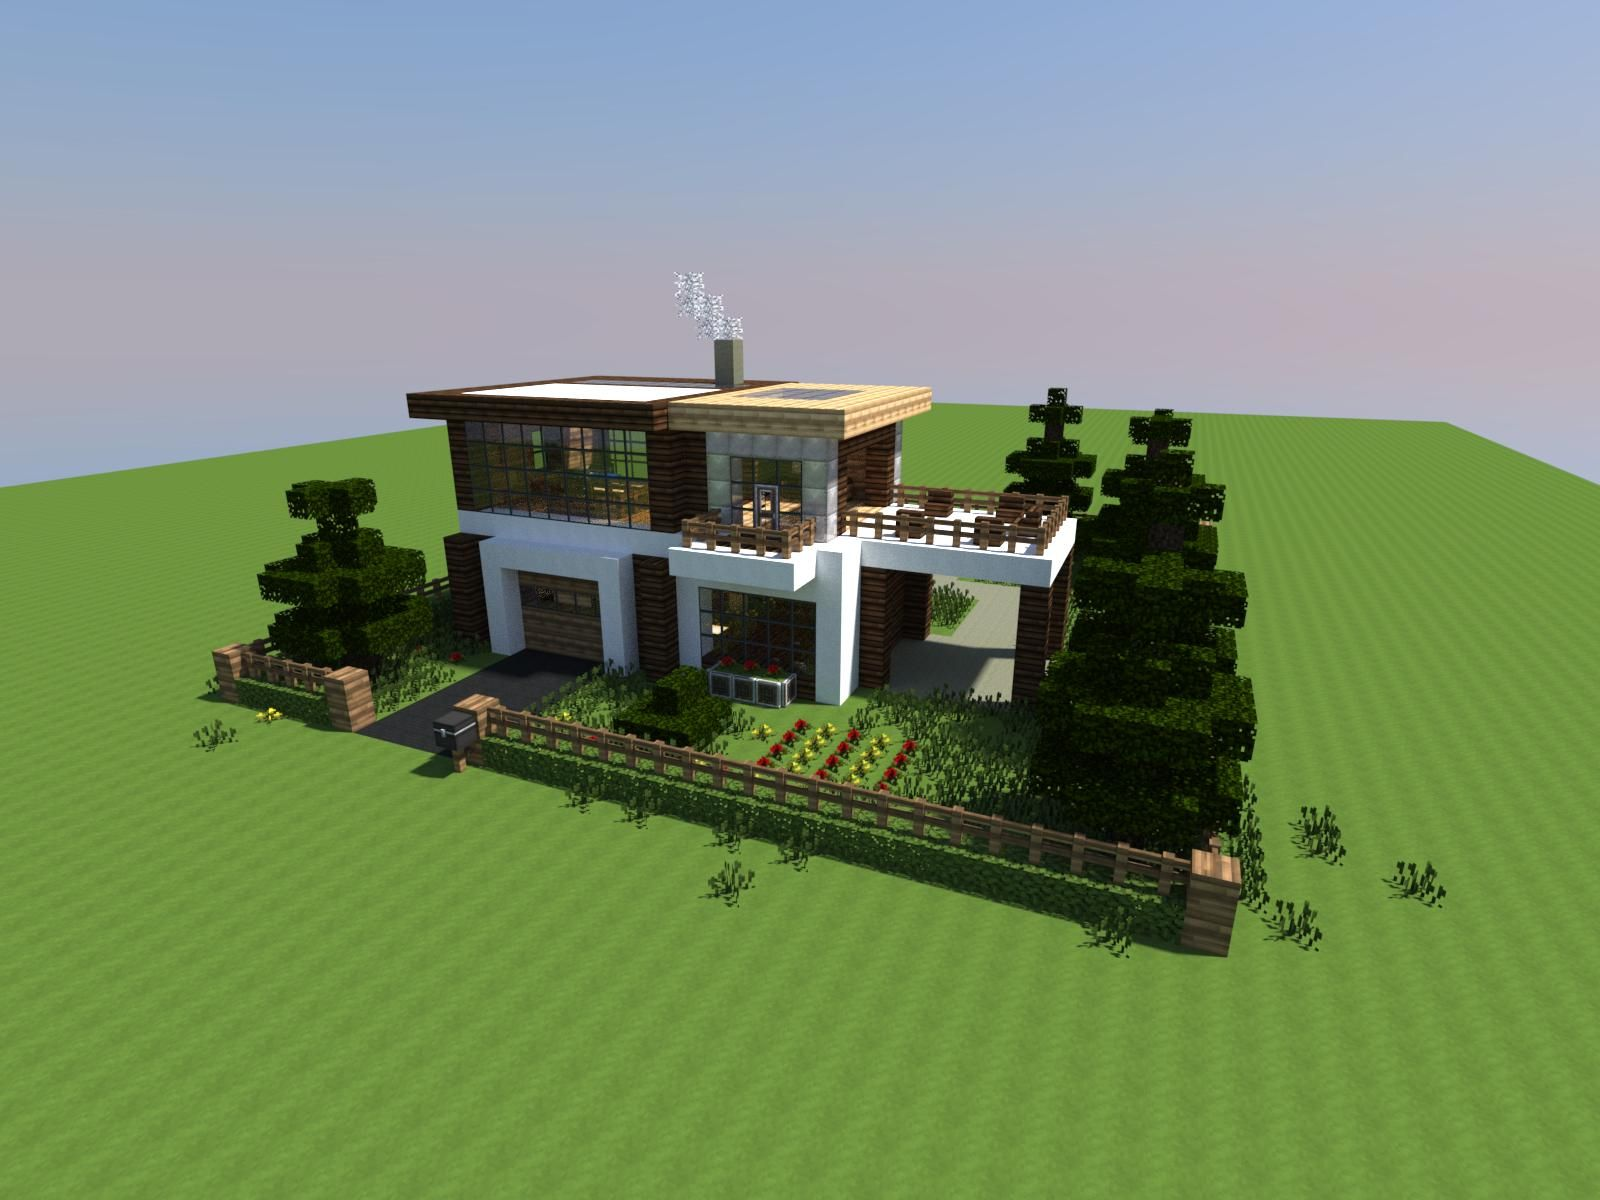 Share for Modern house design in minecraft